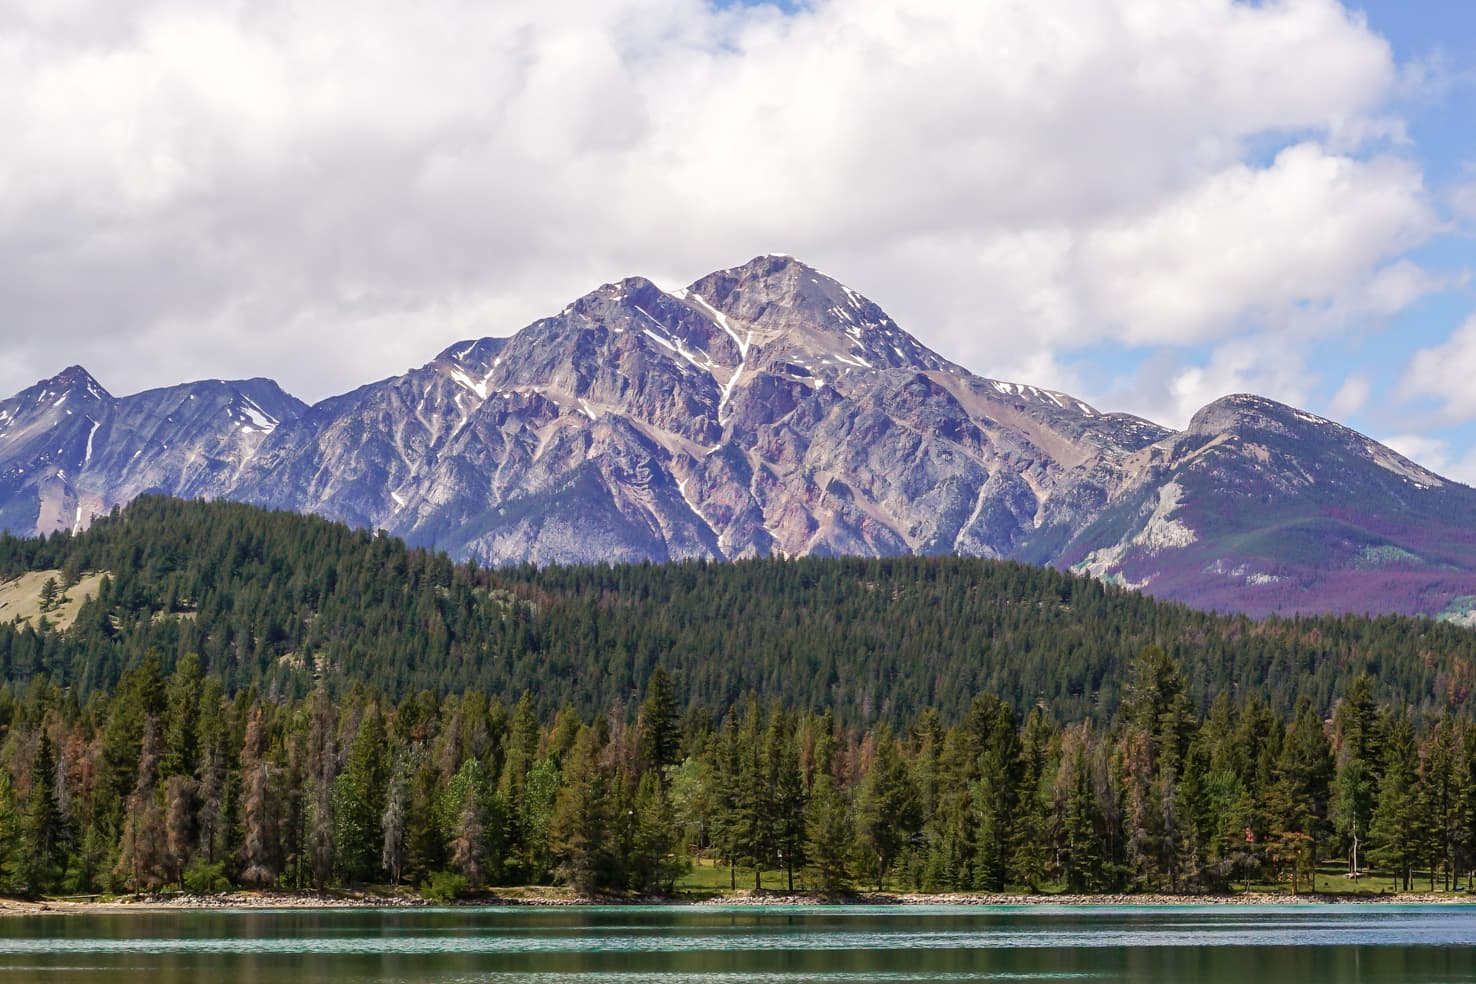 Things to do in Jasper National Park - 64 Climb to the iconic peak of Pyramid Mountain